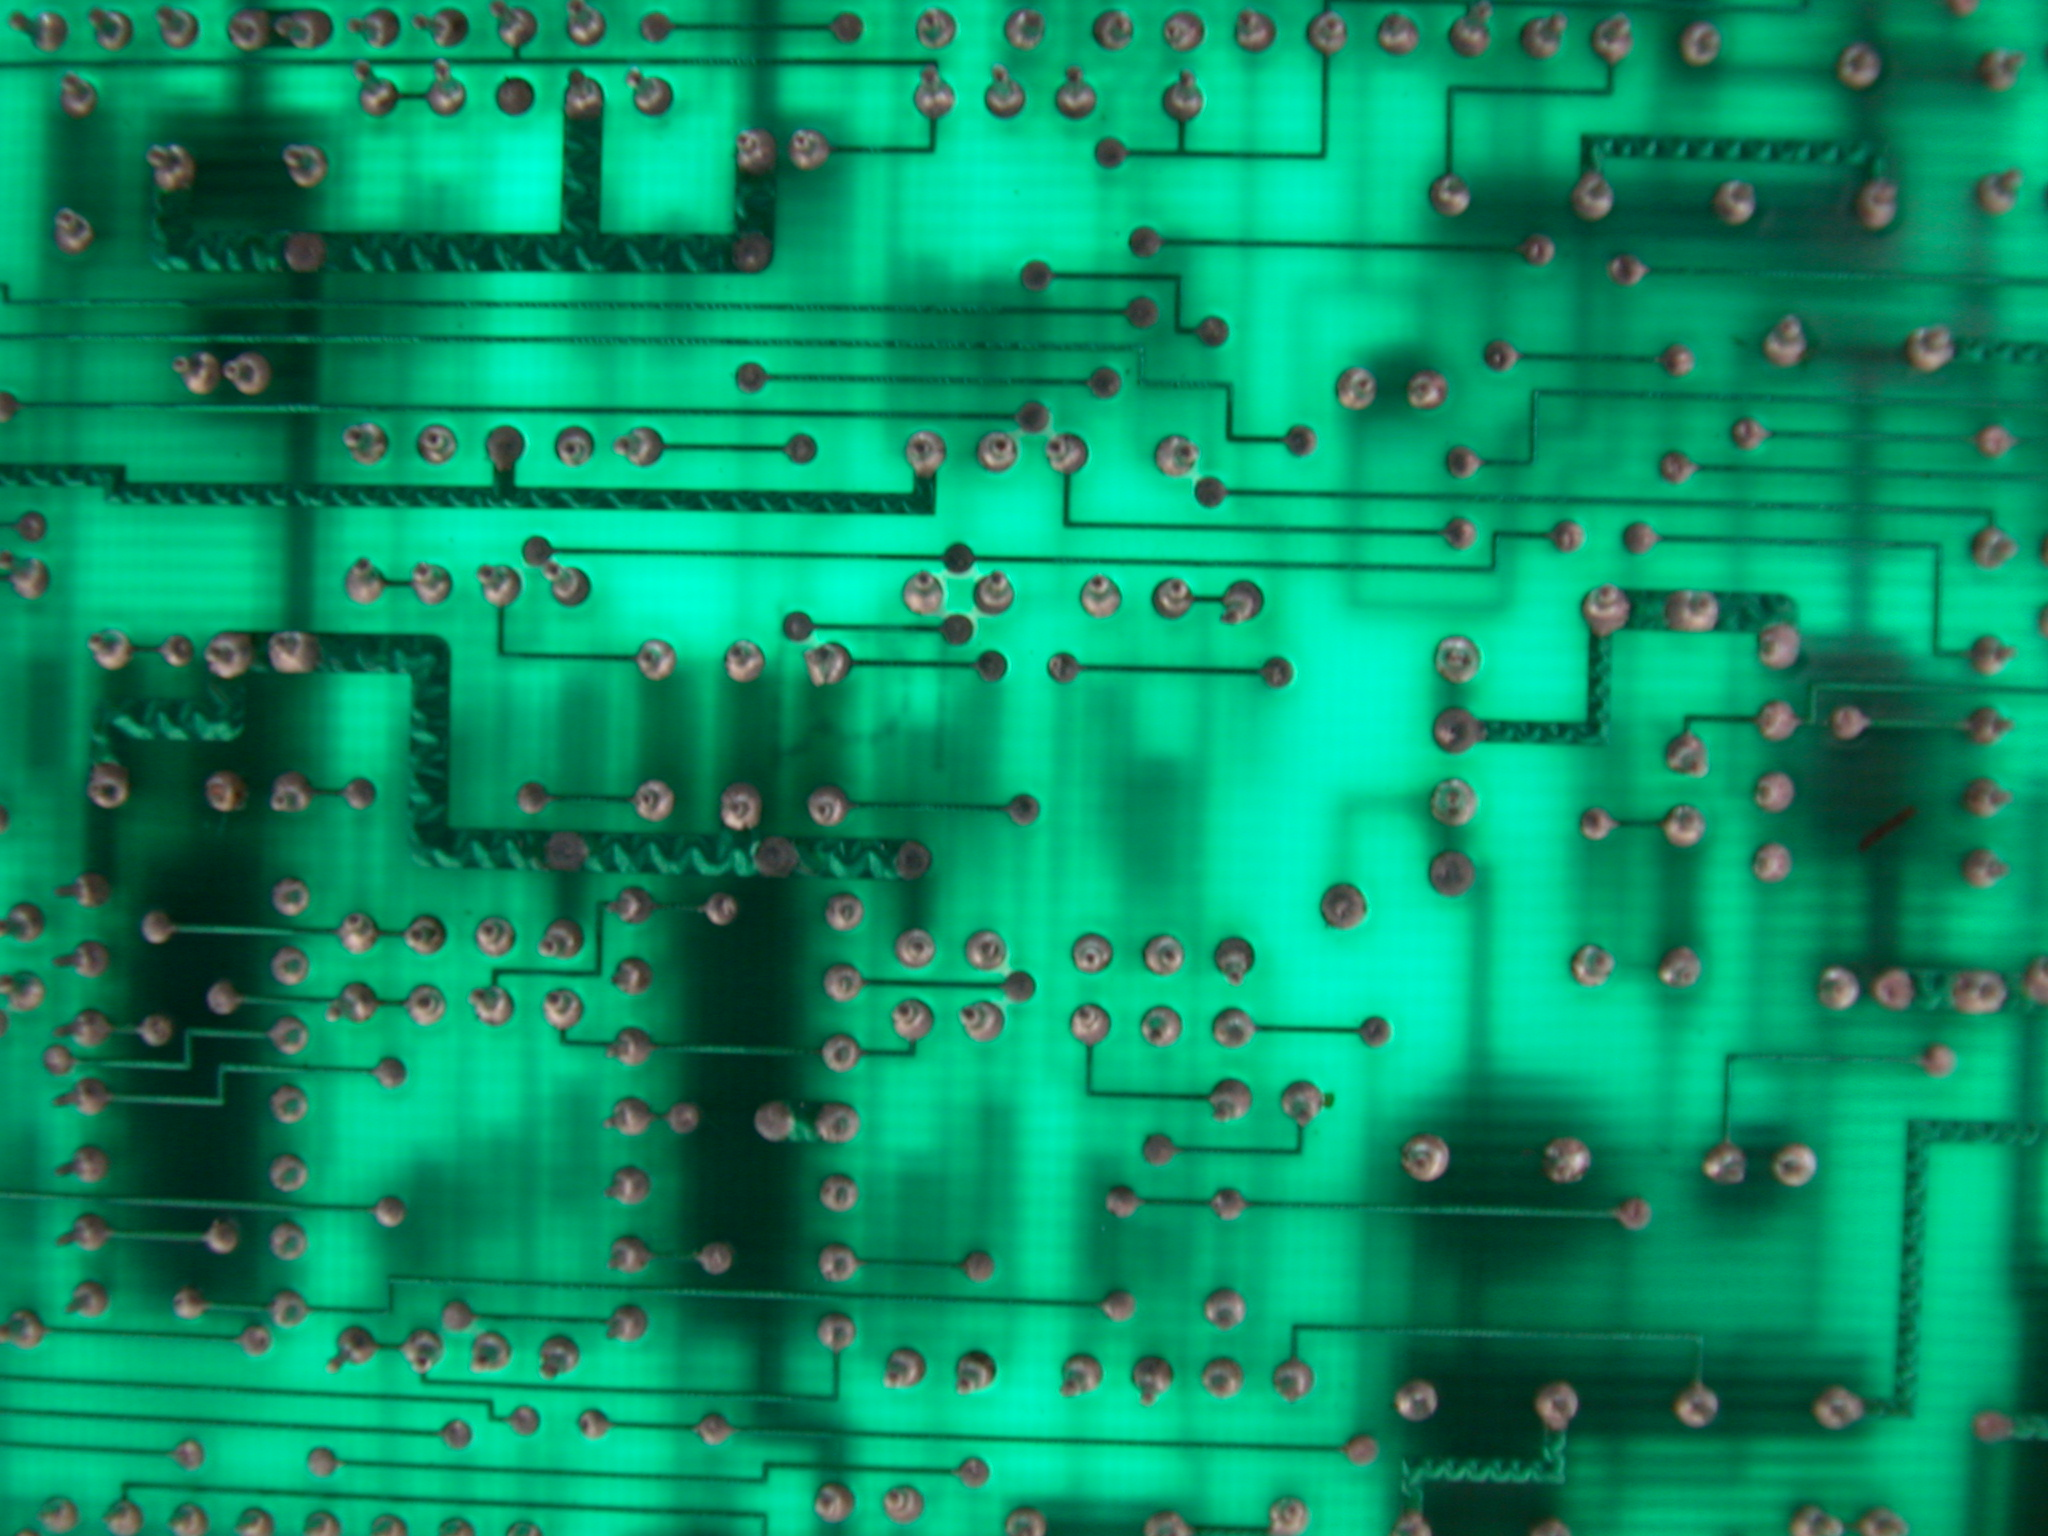 objects circuits circuitboard green solder chips computer hi-res